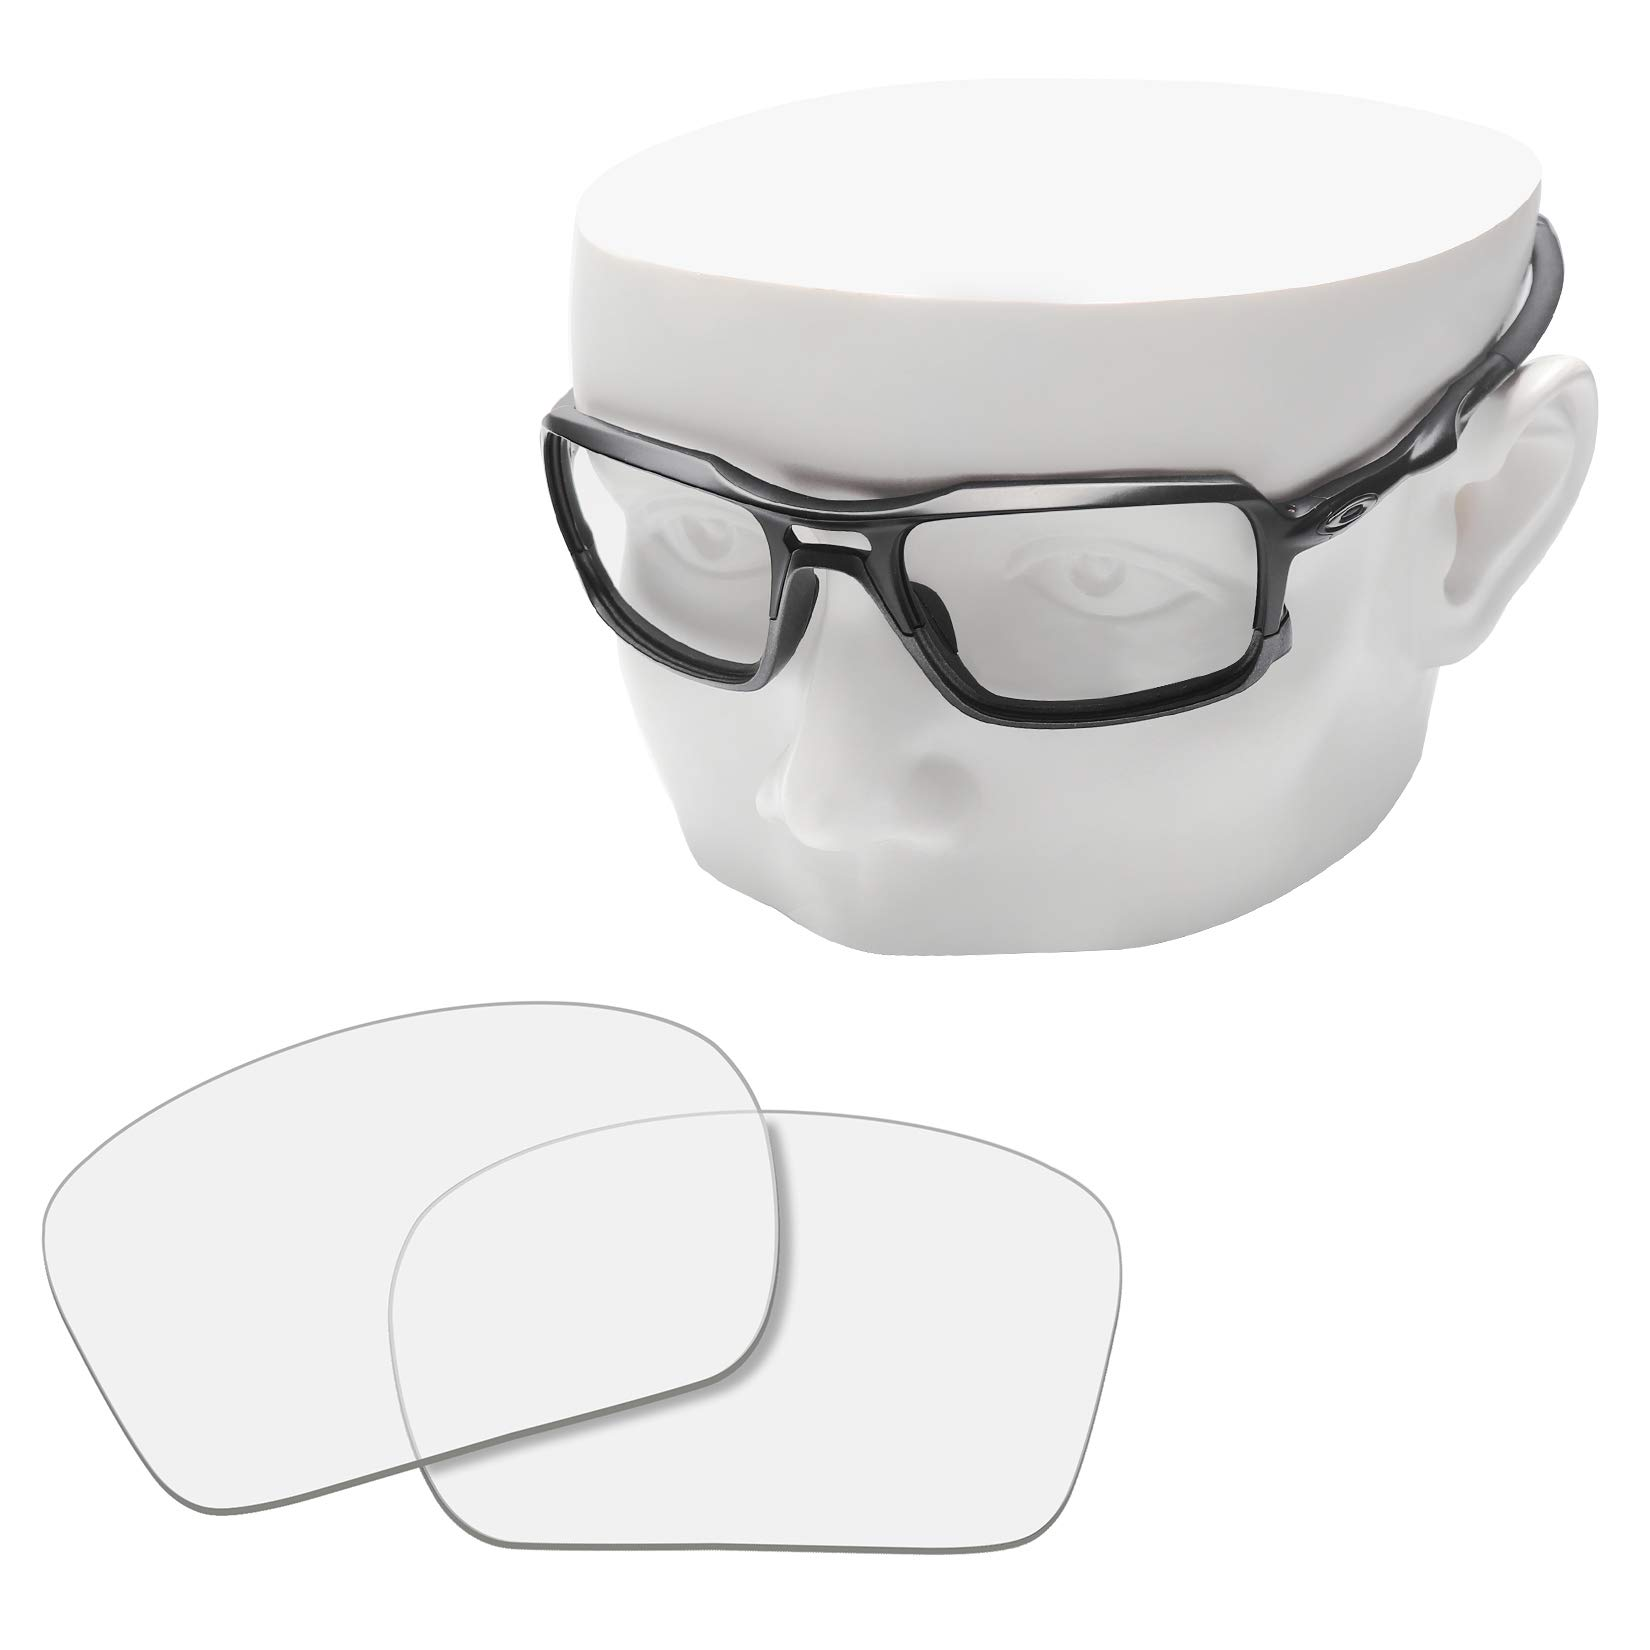 OOWLIT Replacement Lenses Compatible with Oakley Triggerman Sunglass